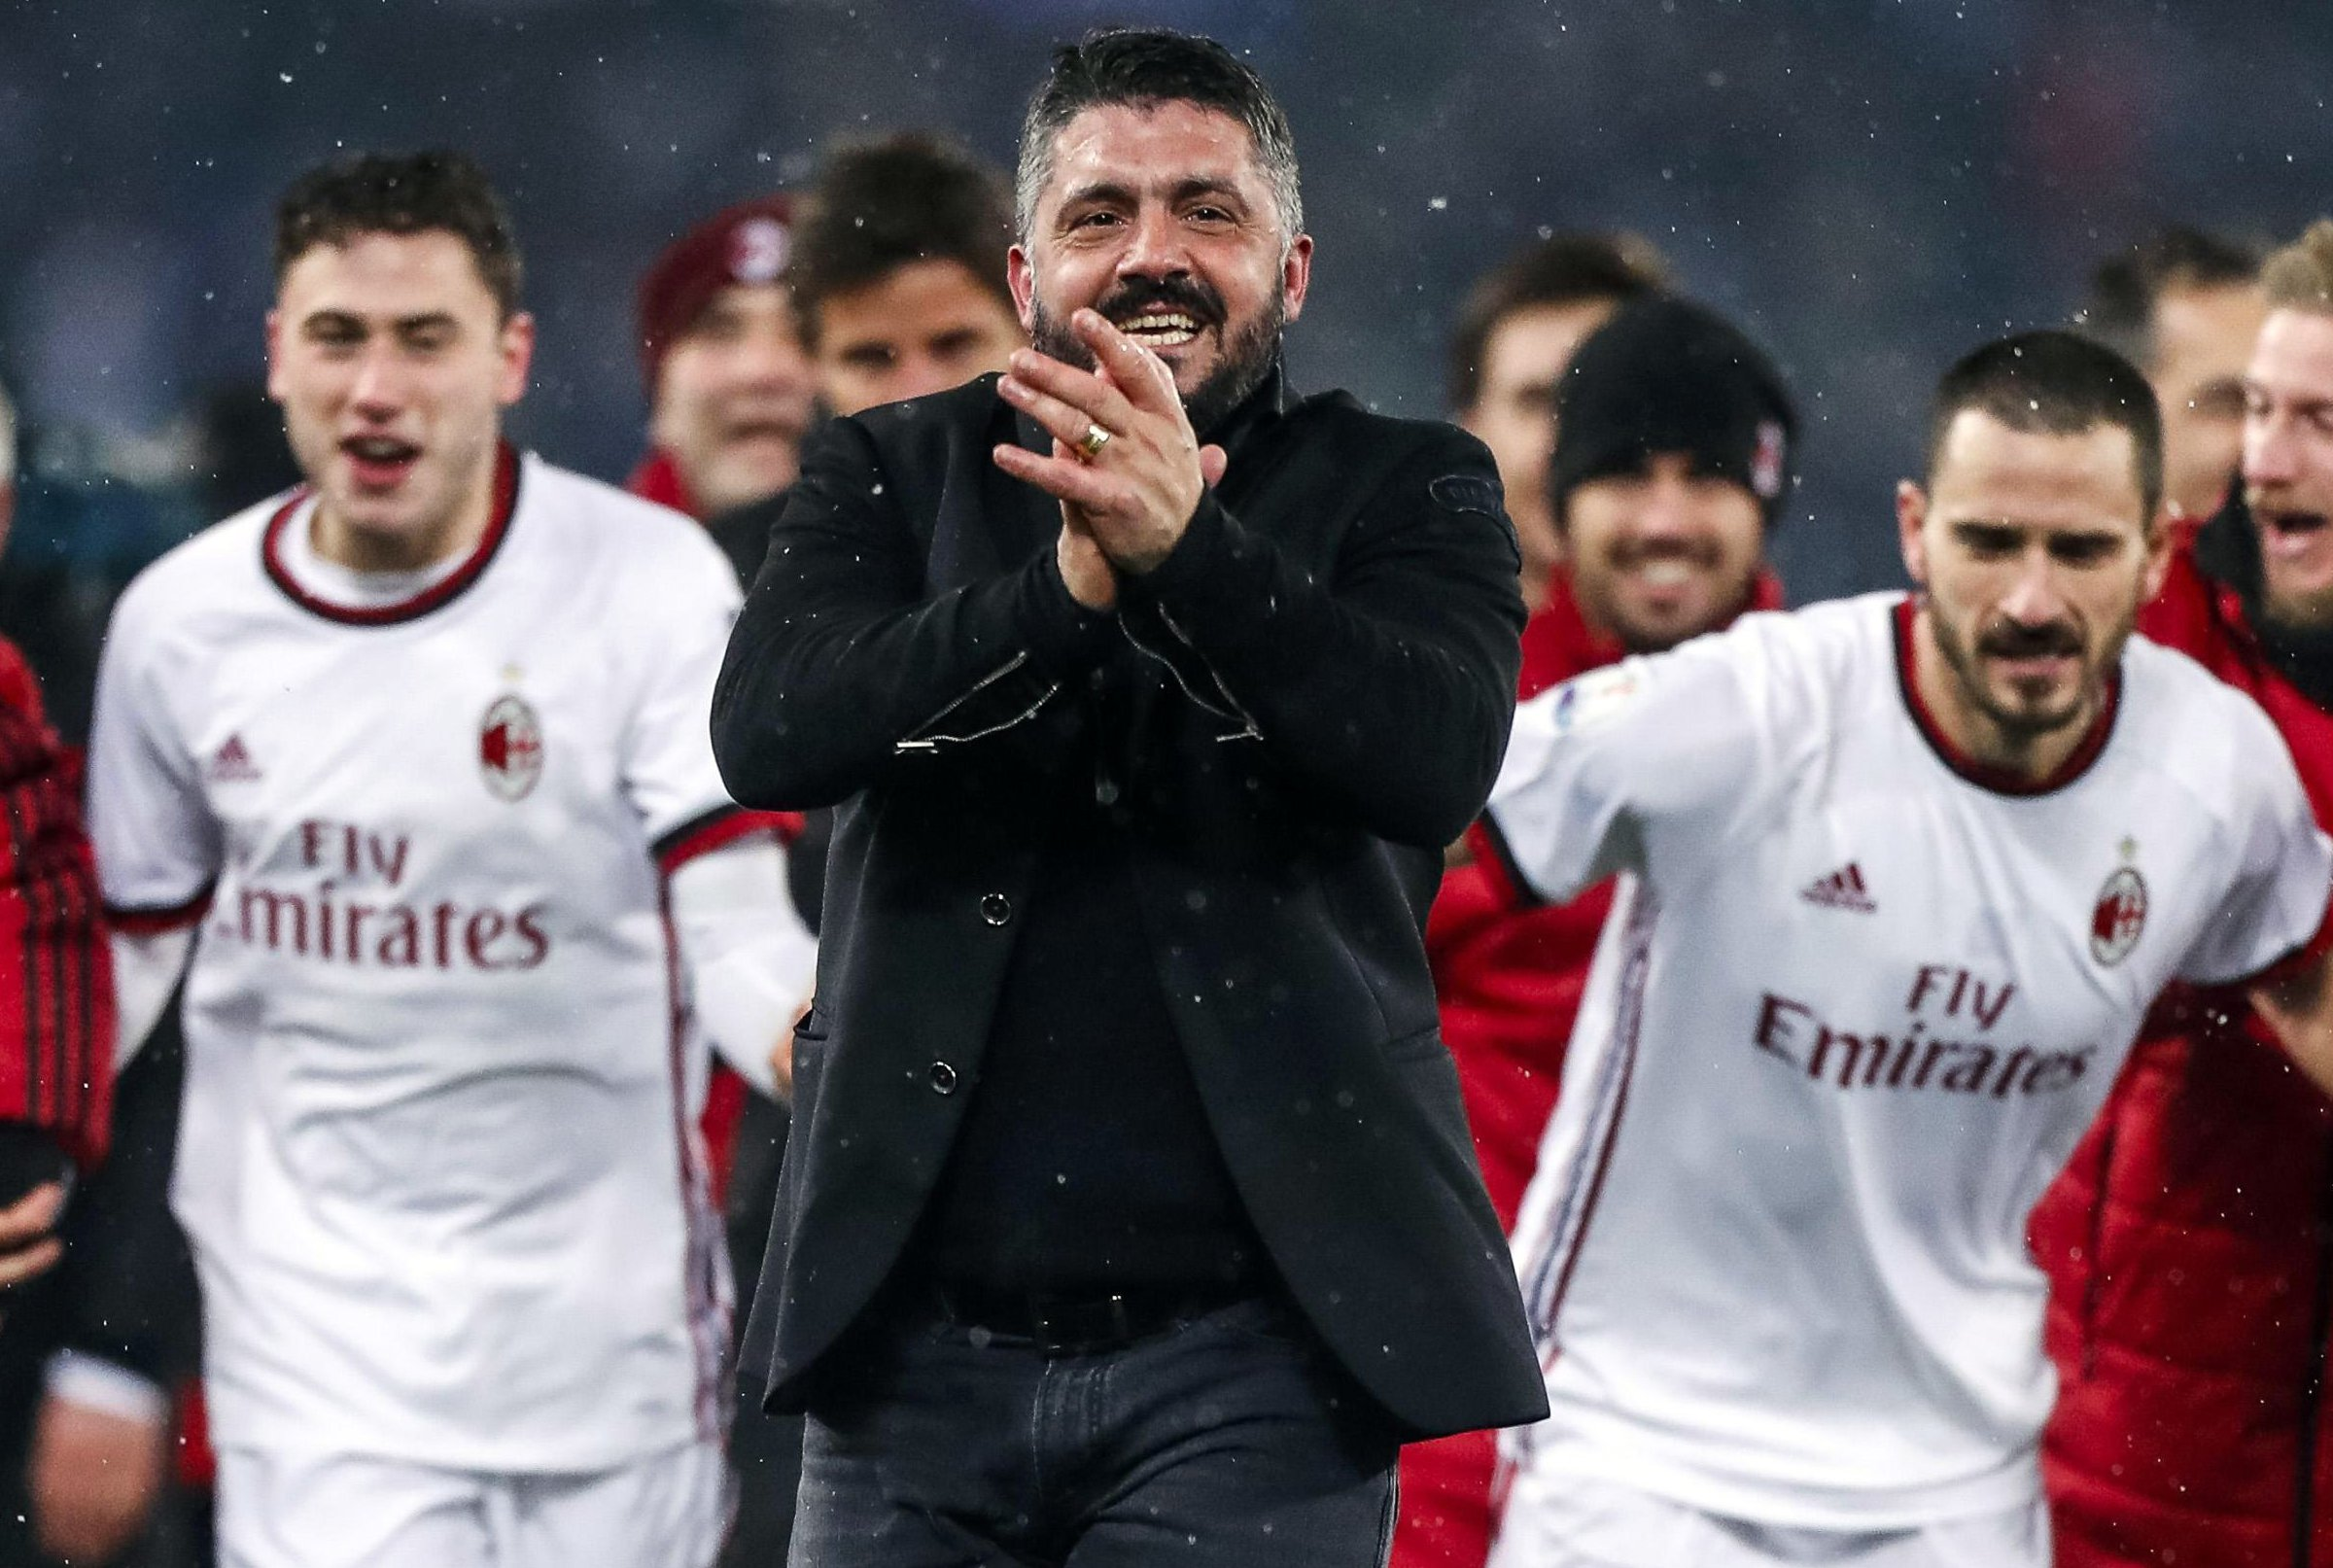 AC Milan coach Gennaro Gattuso celebrates with players after winning the Italian Cup, second-leg semifinal soccer match between Lazio and AC Milan, at the Rome Olympic stadium Wednesday, Feb. 28, 2018. AC Milan won 5-4 following a penalty shootout and advances to the final where it plays Juventus. (Angelo Carconi/ANSA via AP)